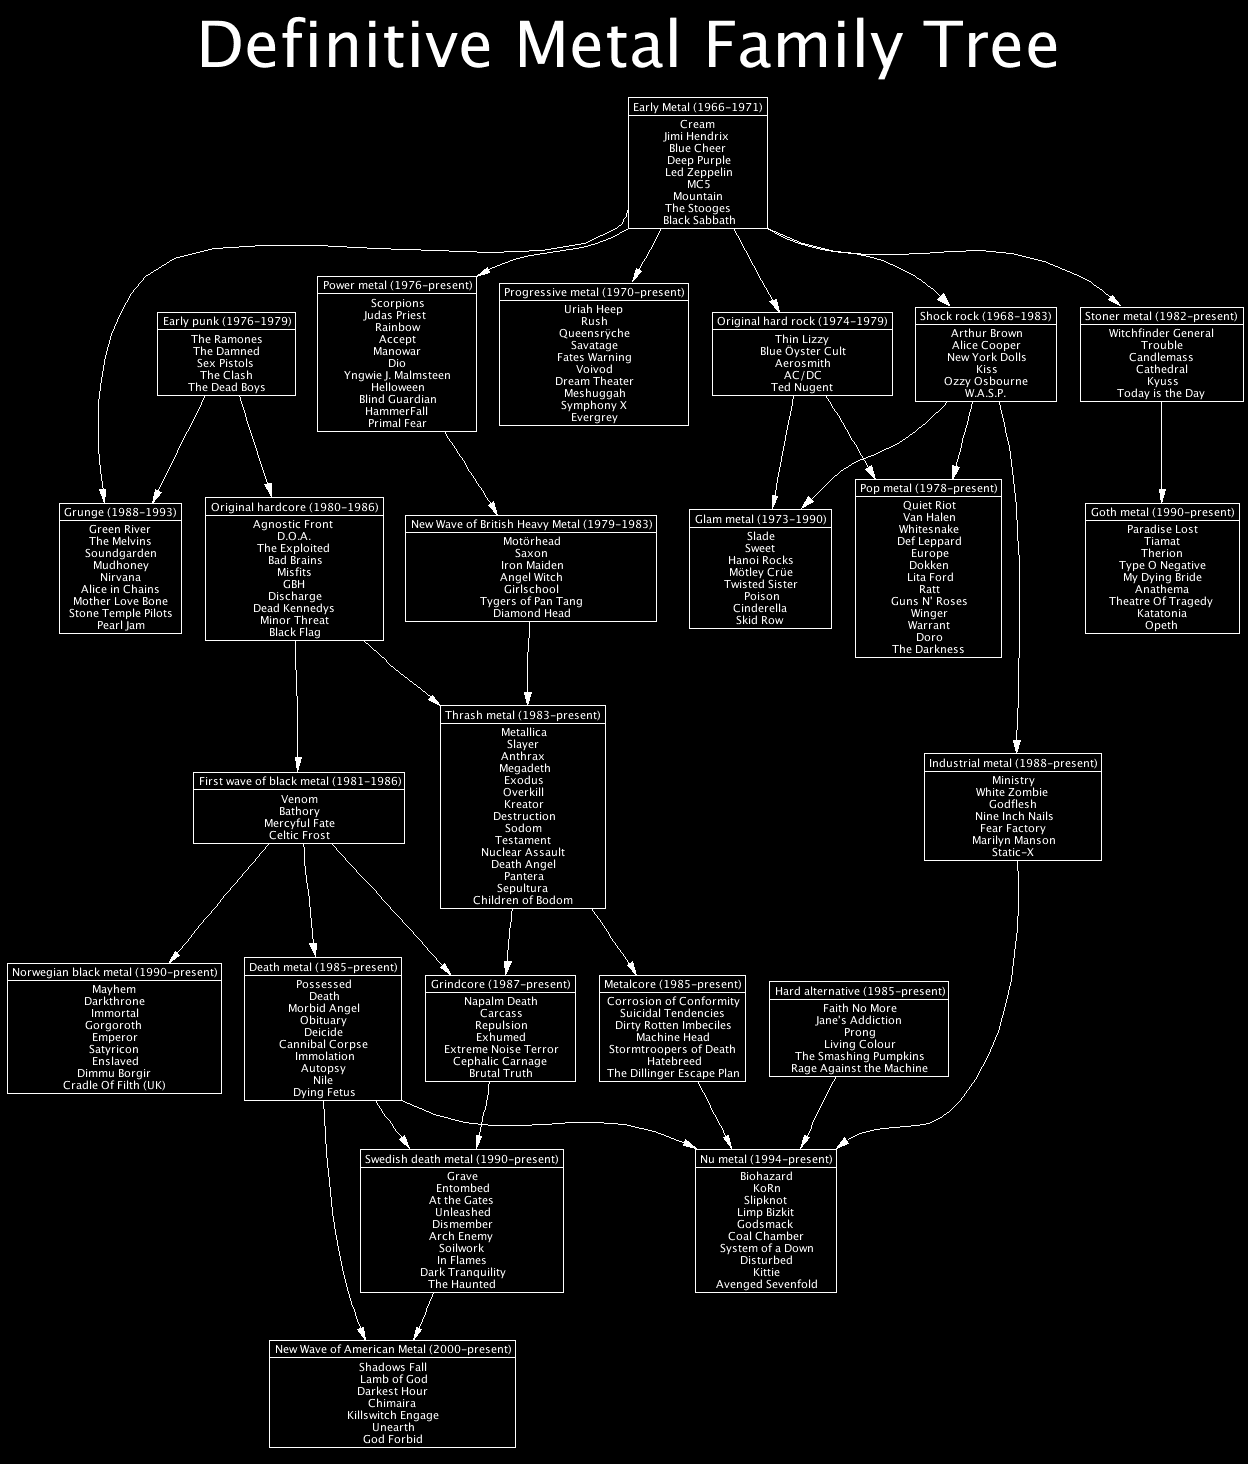 http://hewgill.com/~greg/definitive-metal-family-tree.png